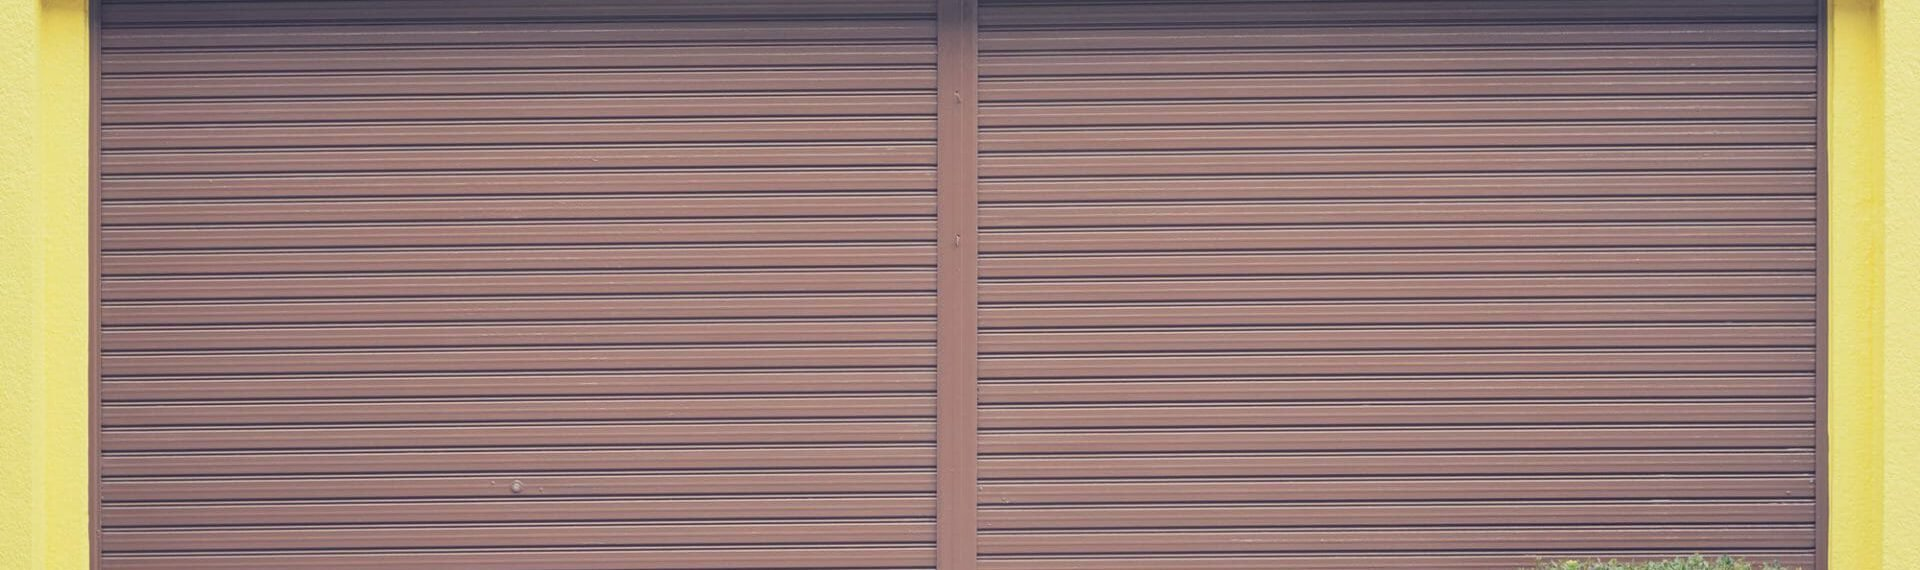 brown roller shutter door installed in a yellow building